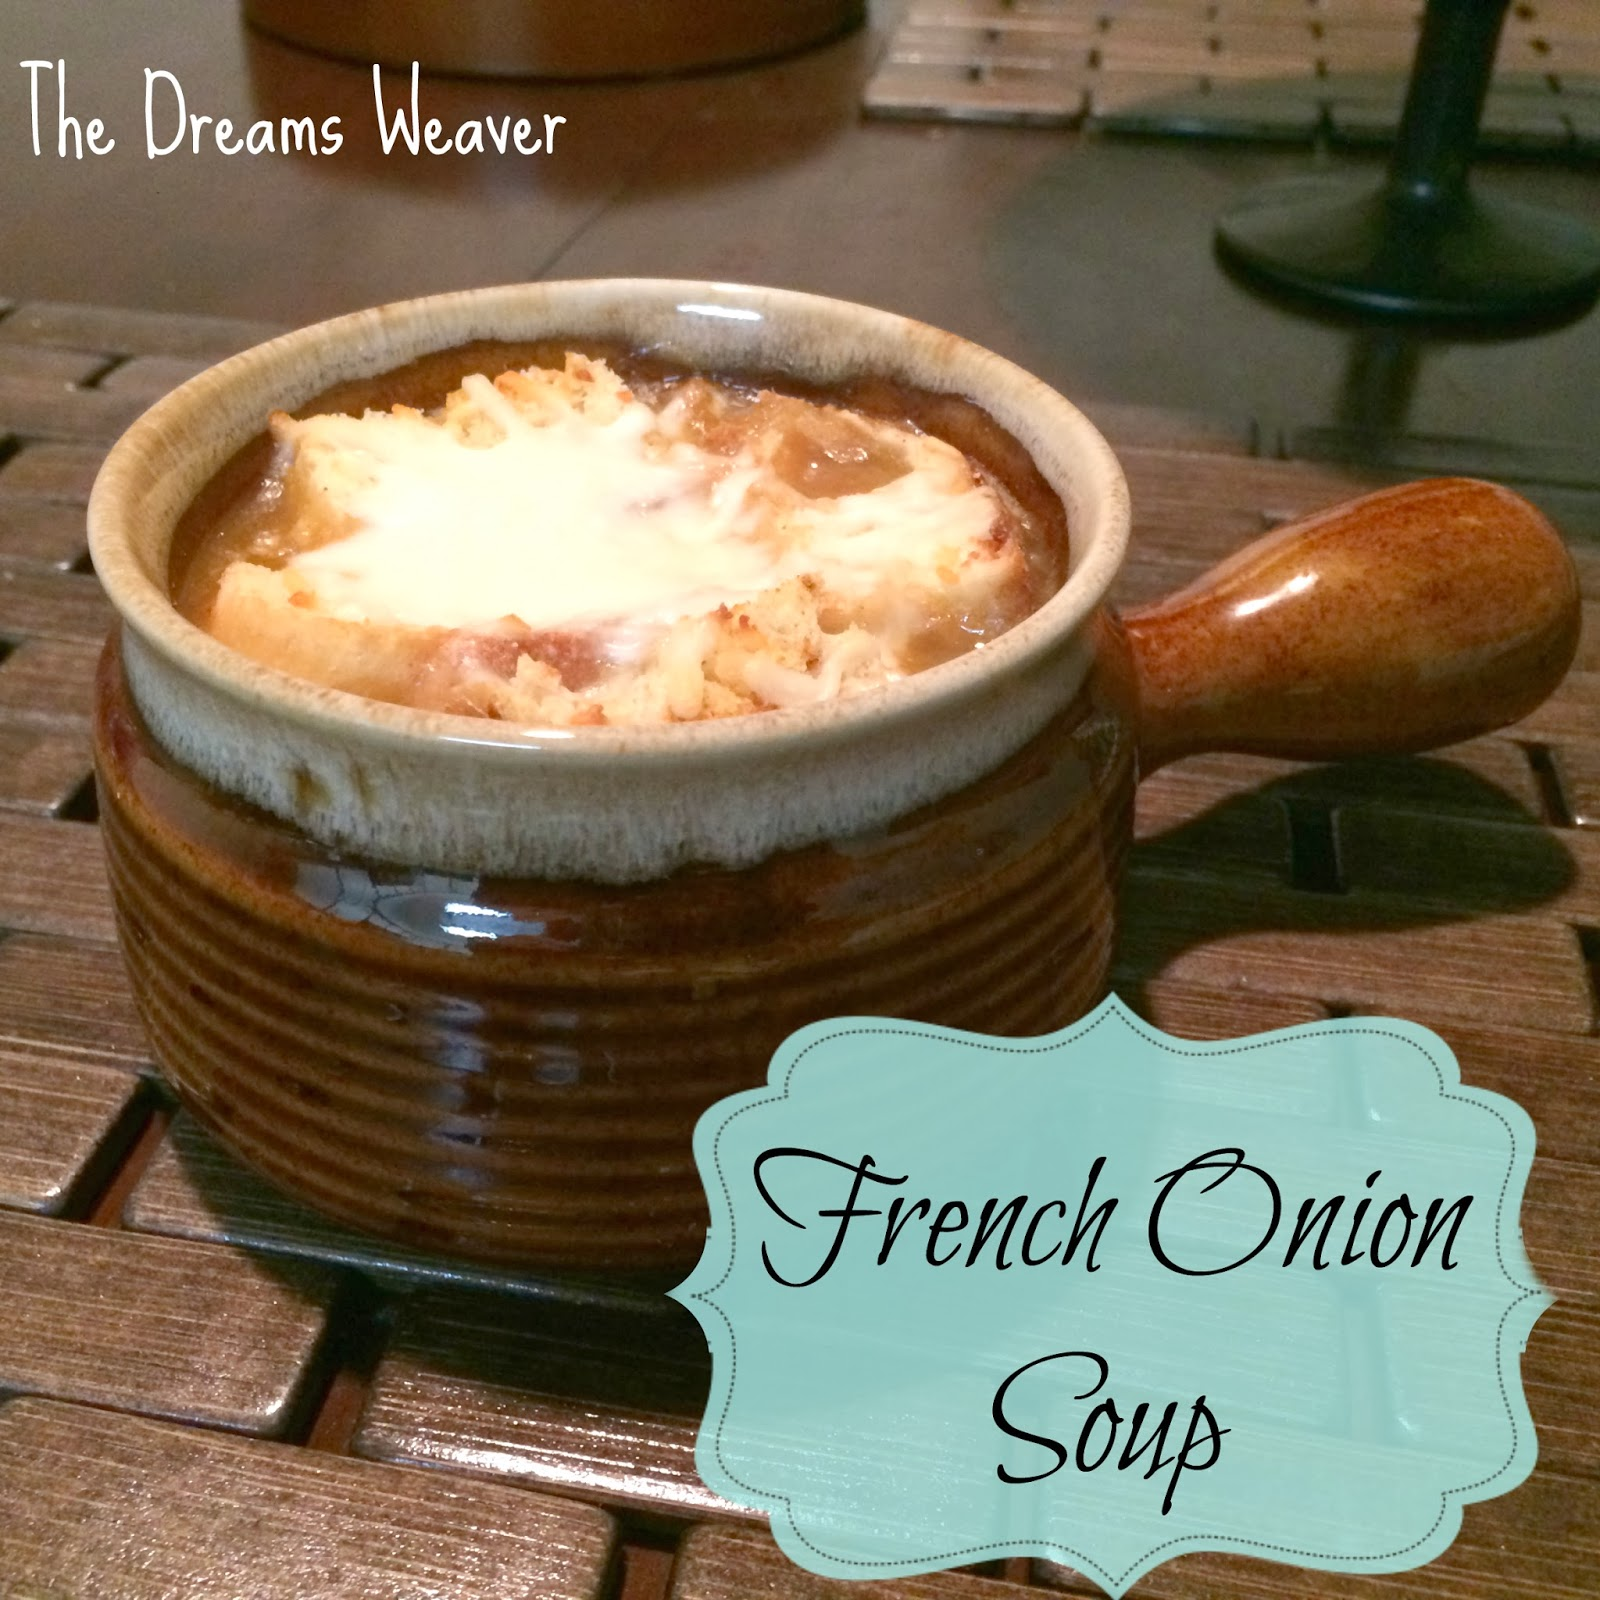 The Dreams Weaver French Onion Soup